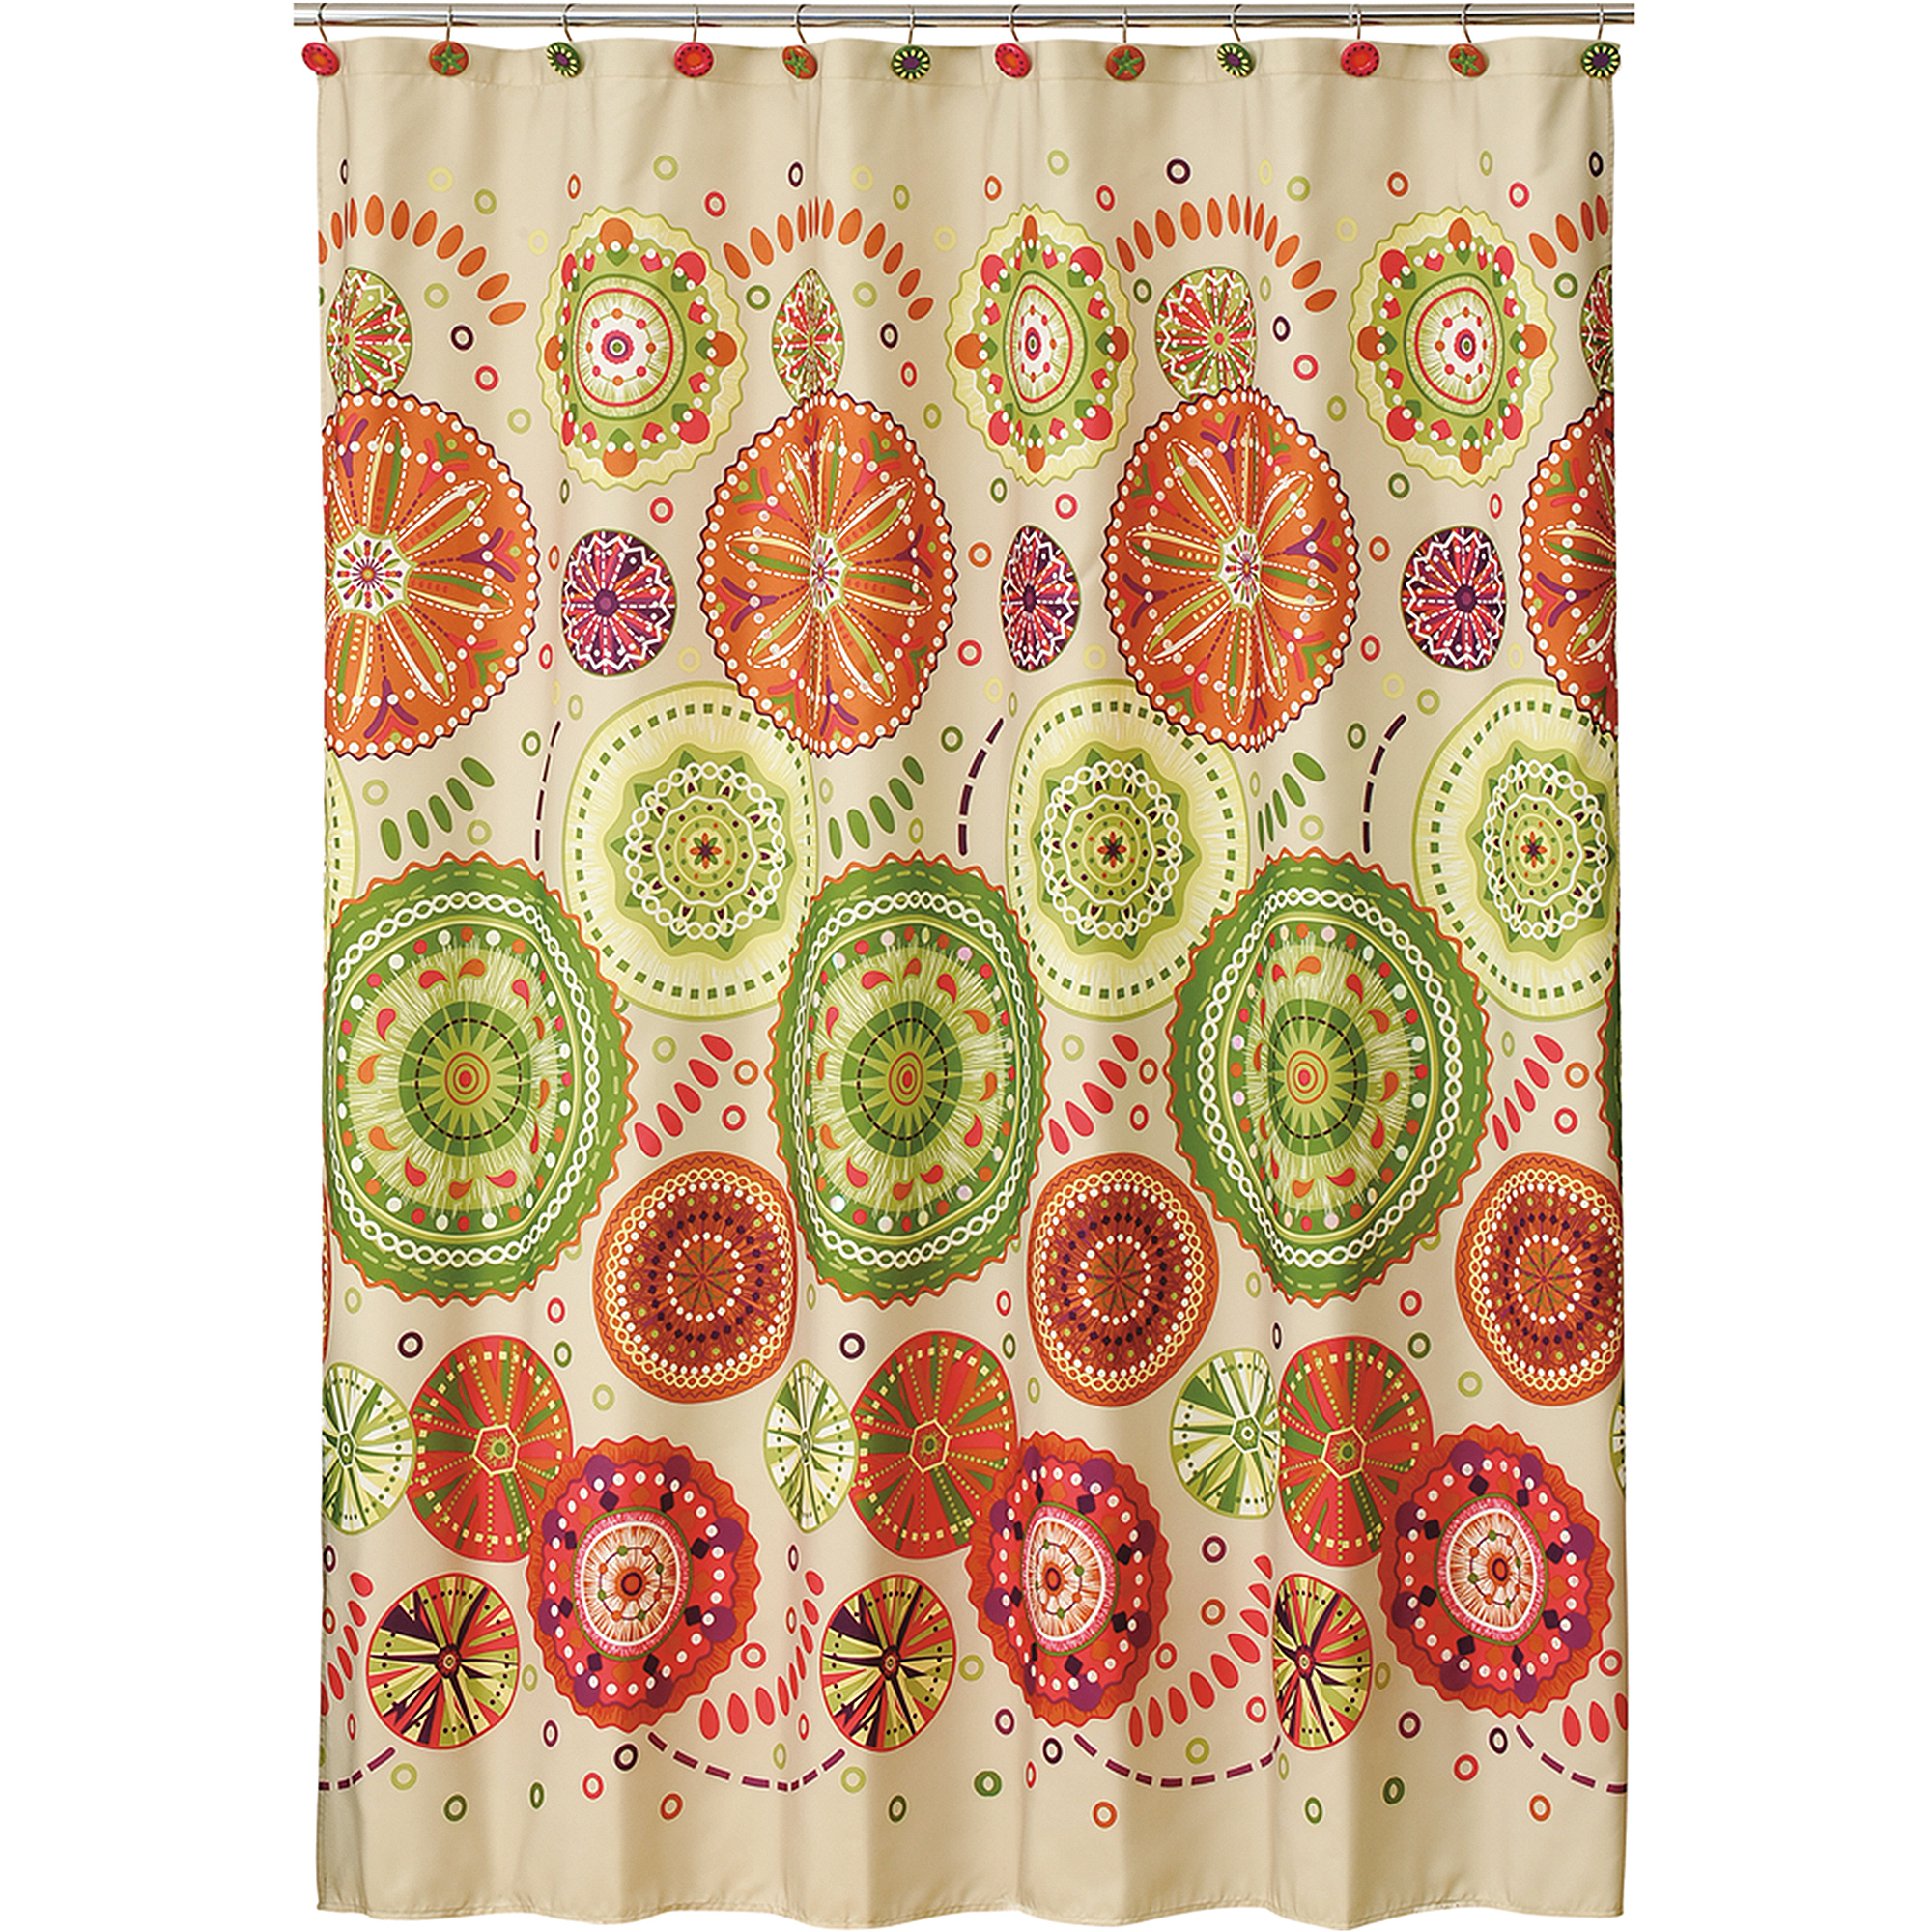 Festiva Shower Curtain by Allure Home Creation